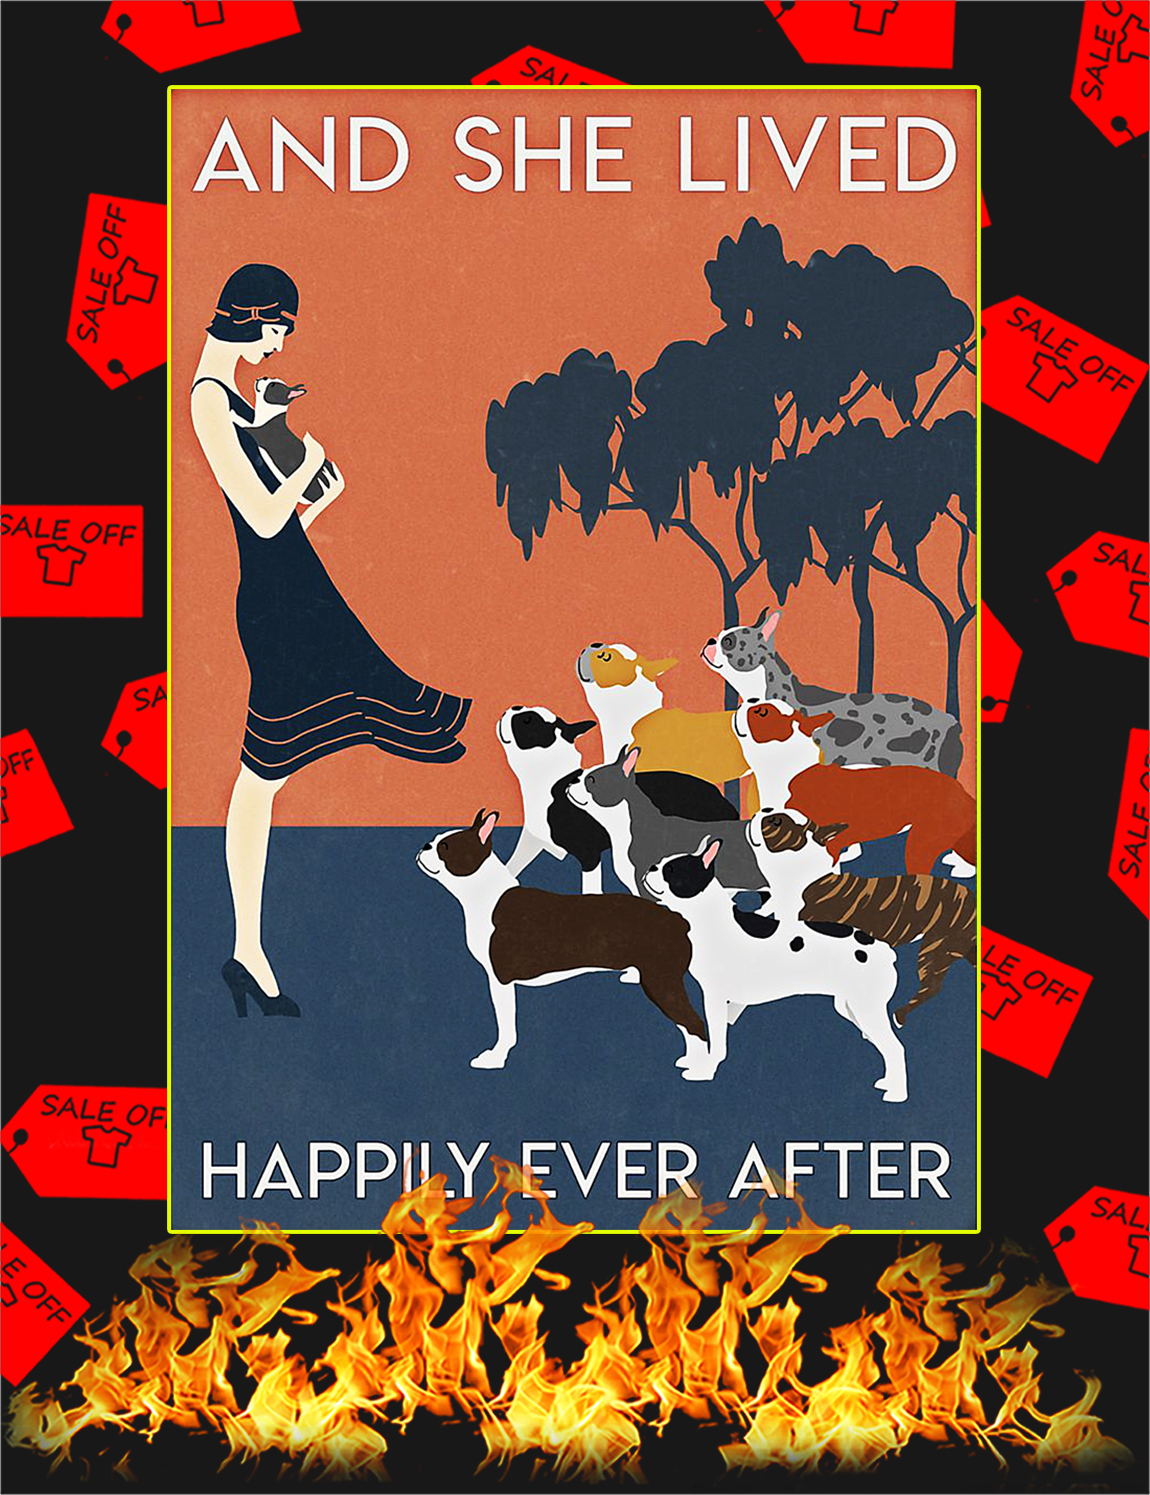 Boston terrier And she lived happily ever after poster - A3